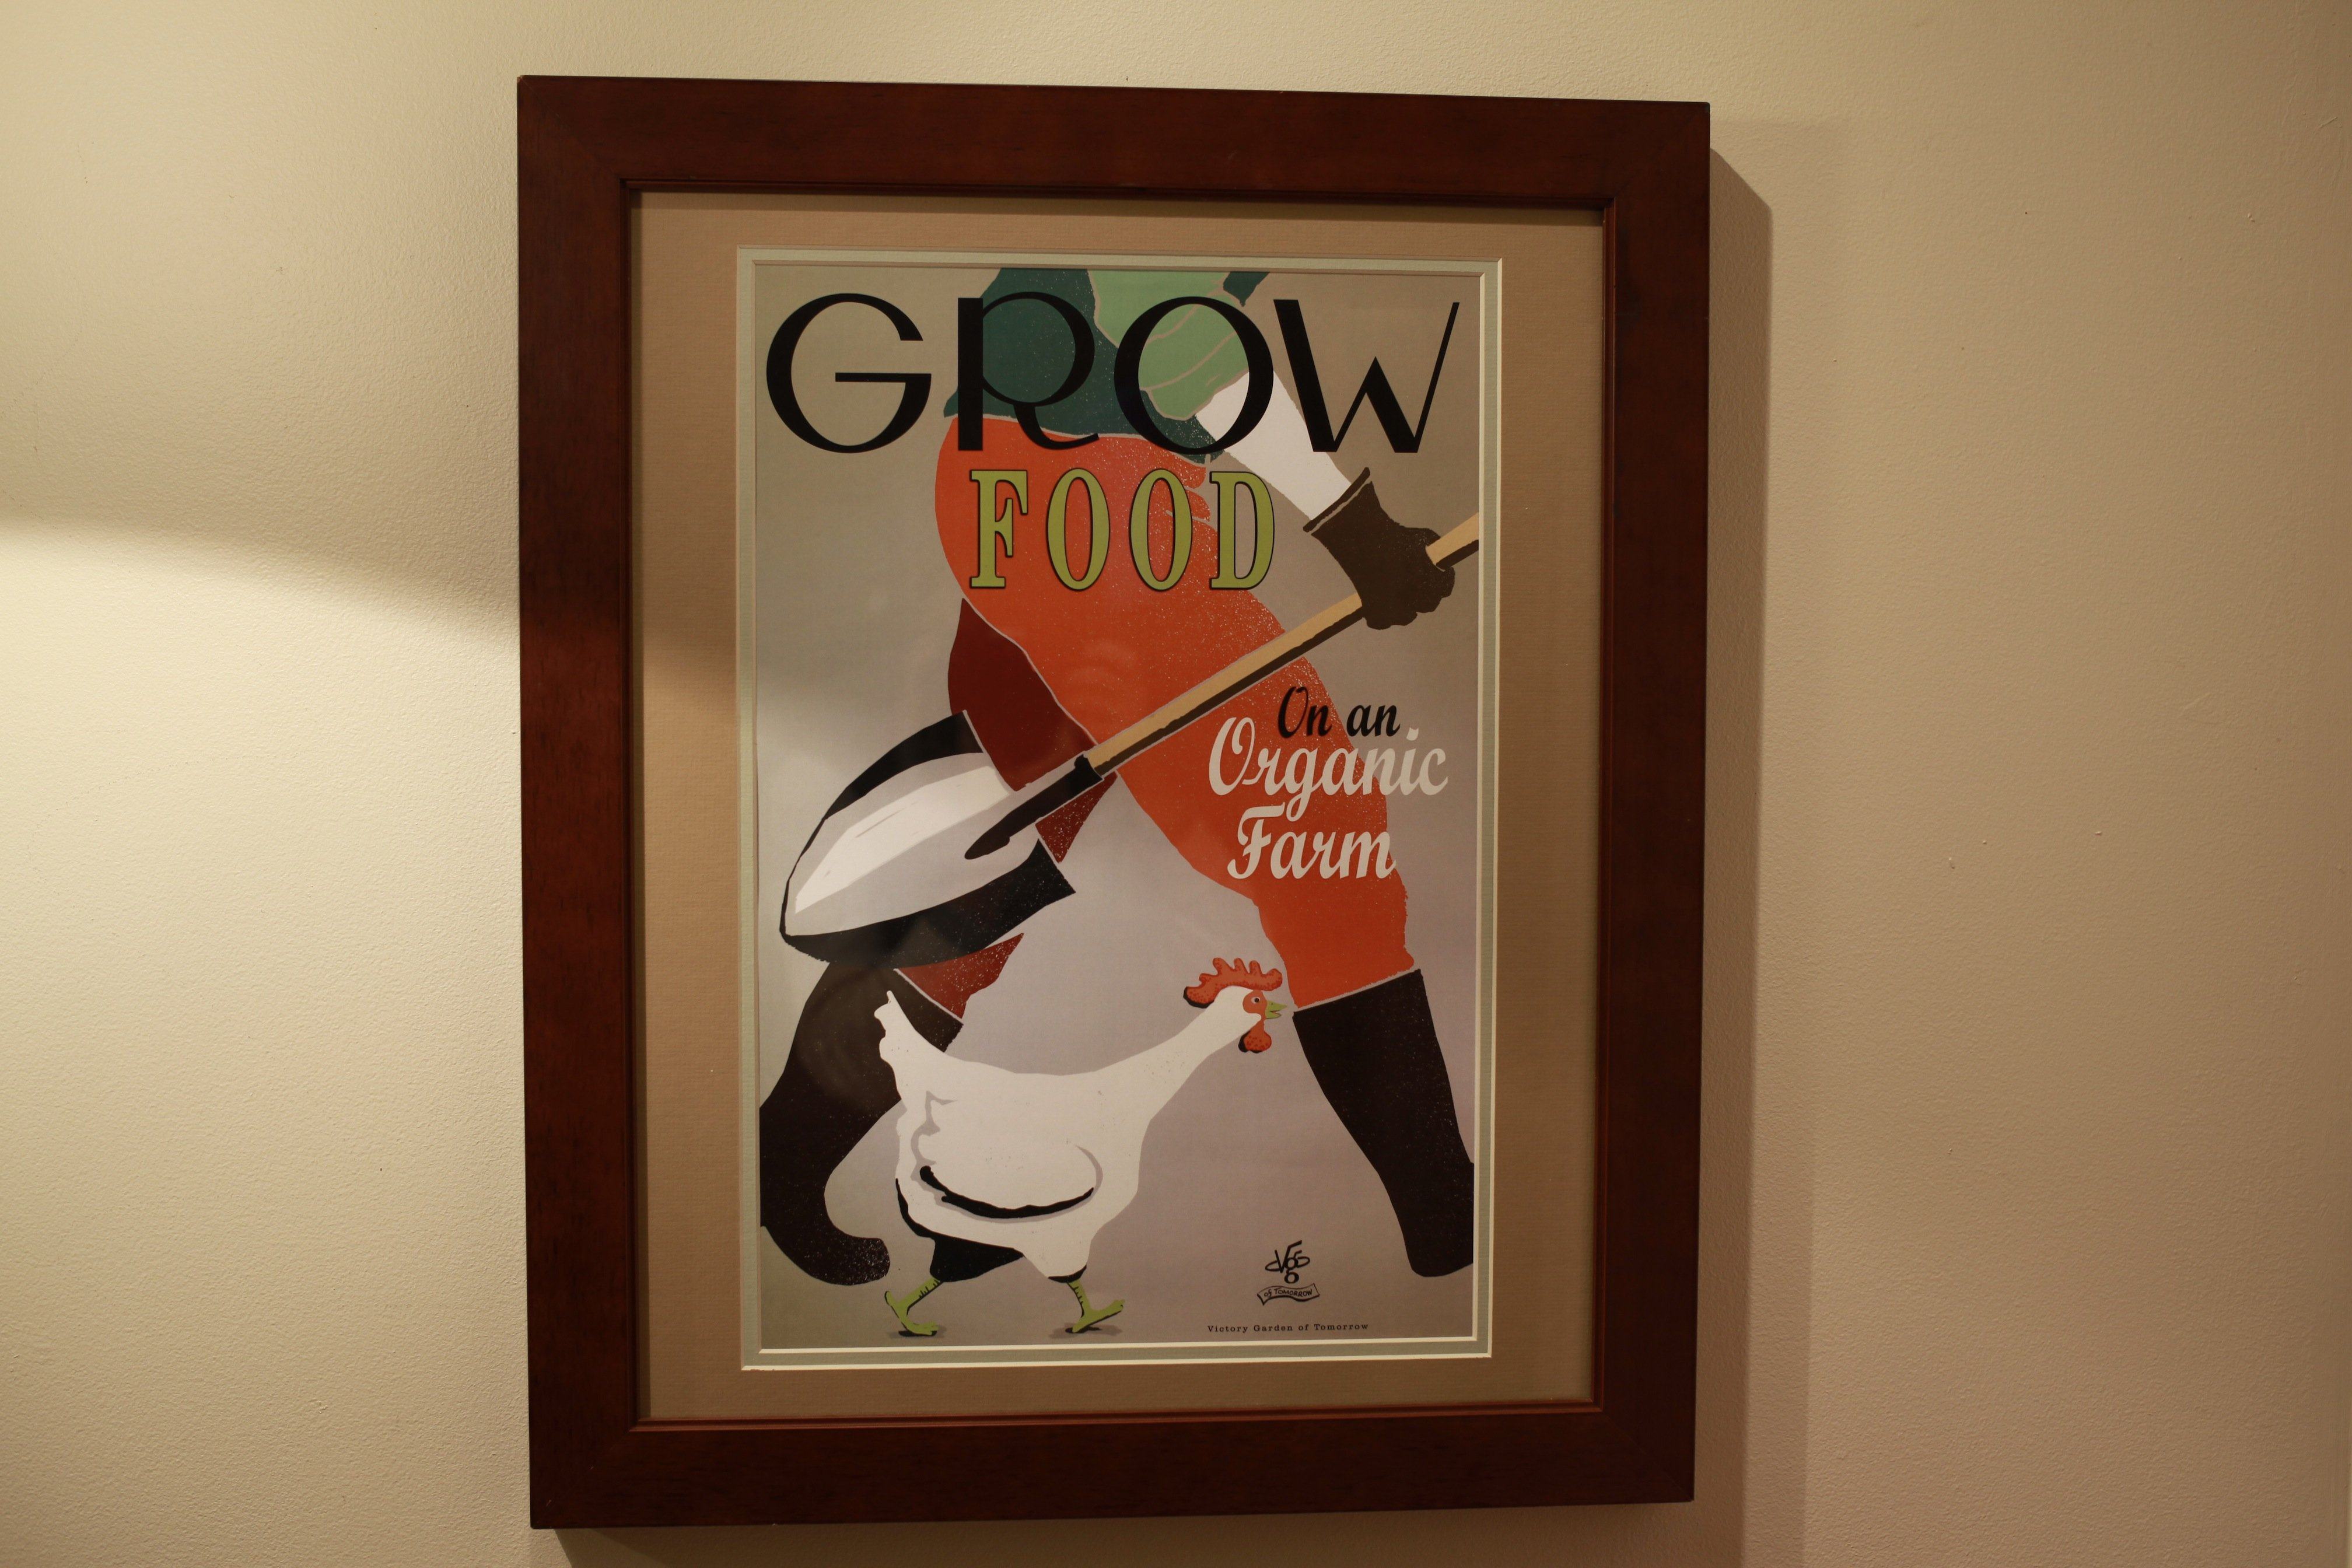 Grow food pic close